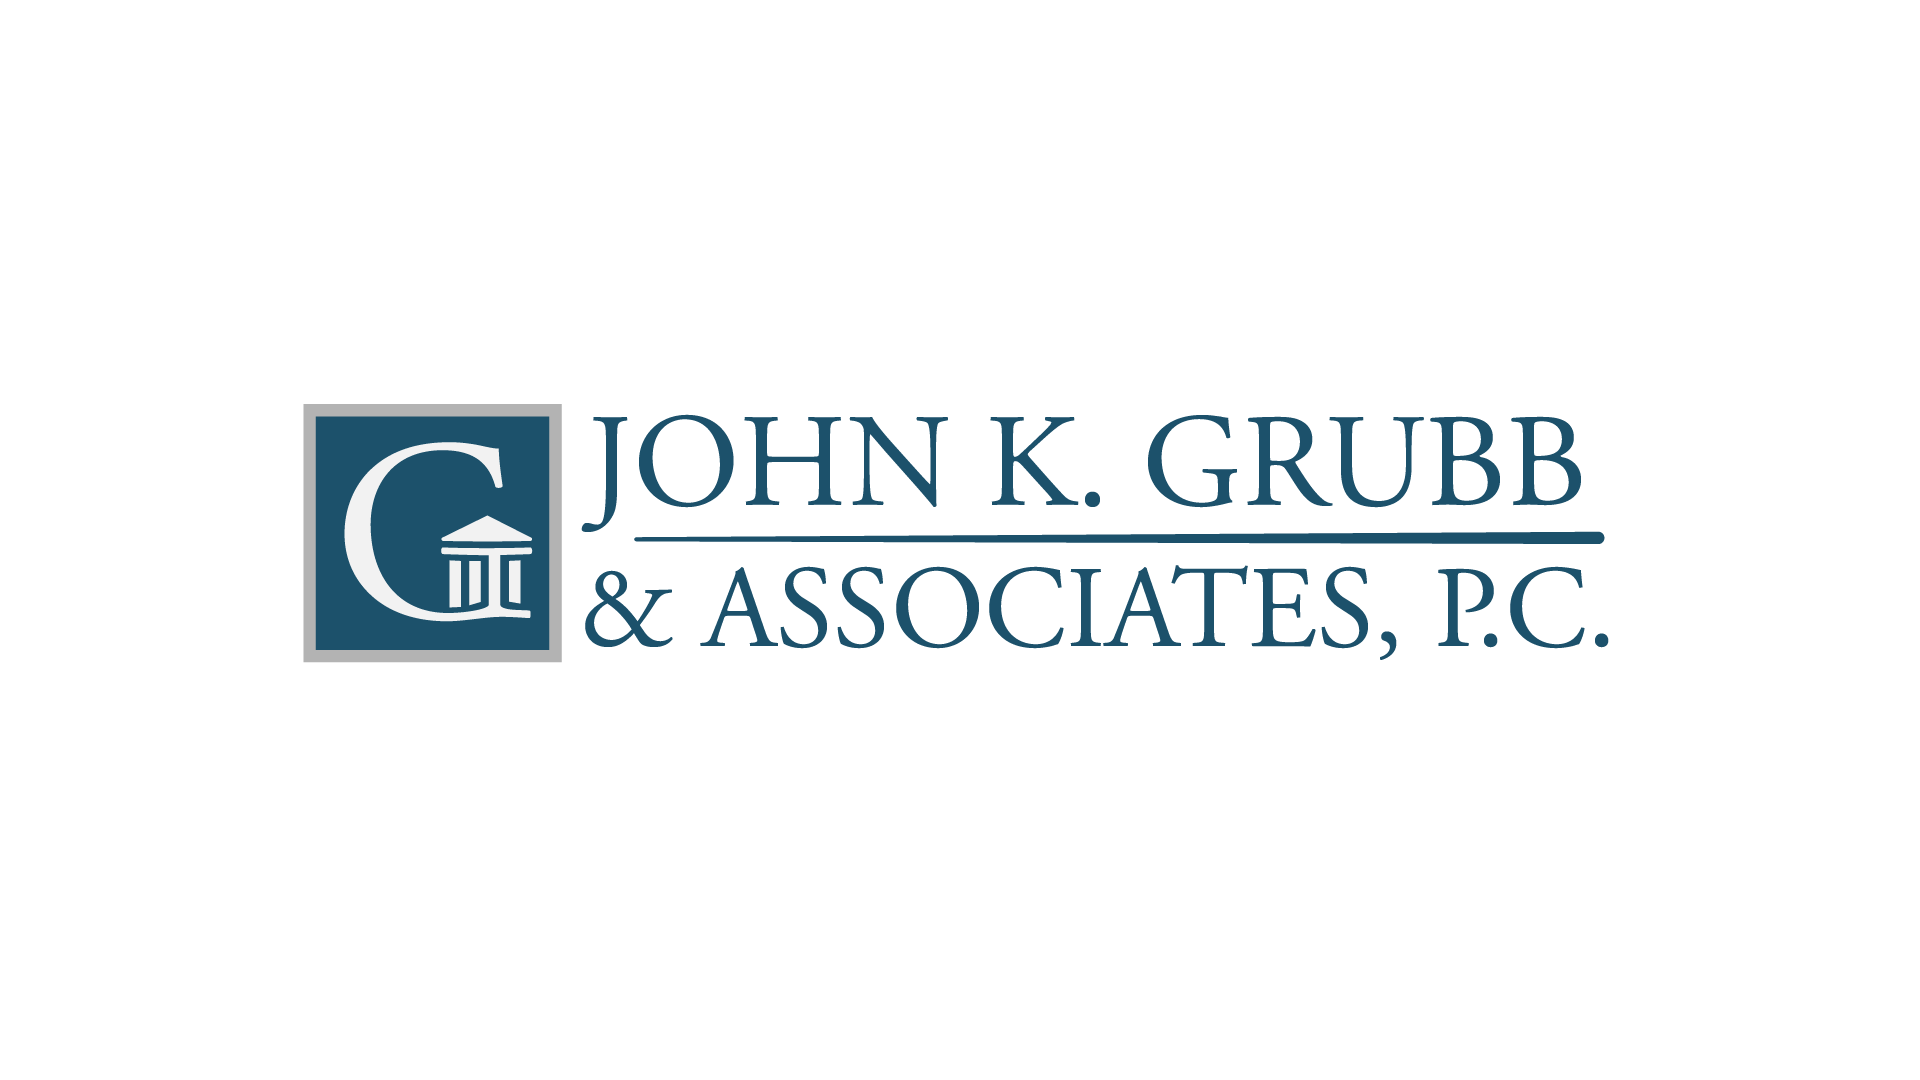 John grubb associates houston divorce attorney family law lawyers solutioingenieria Image collections